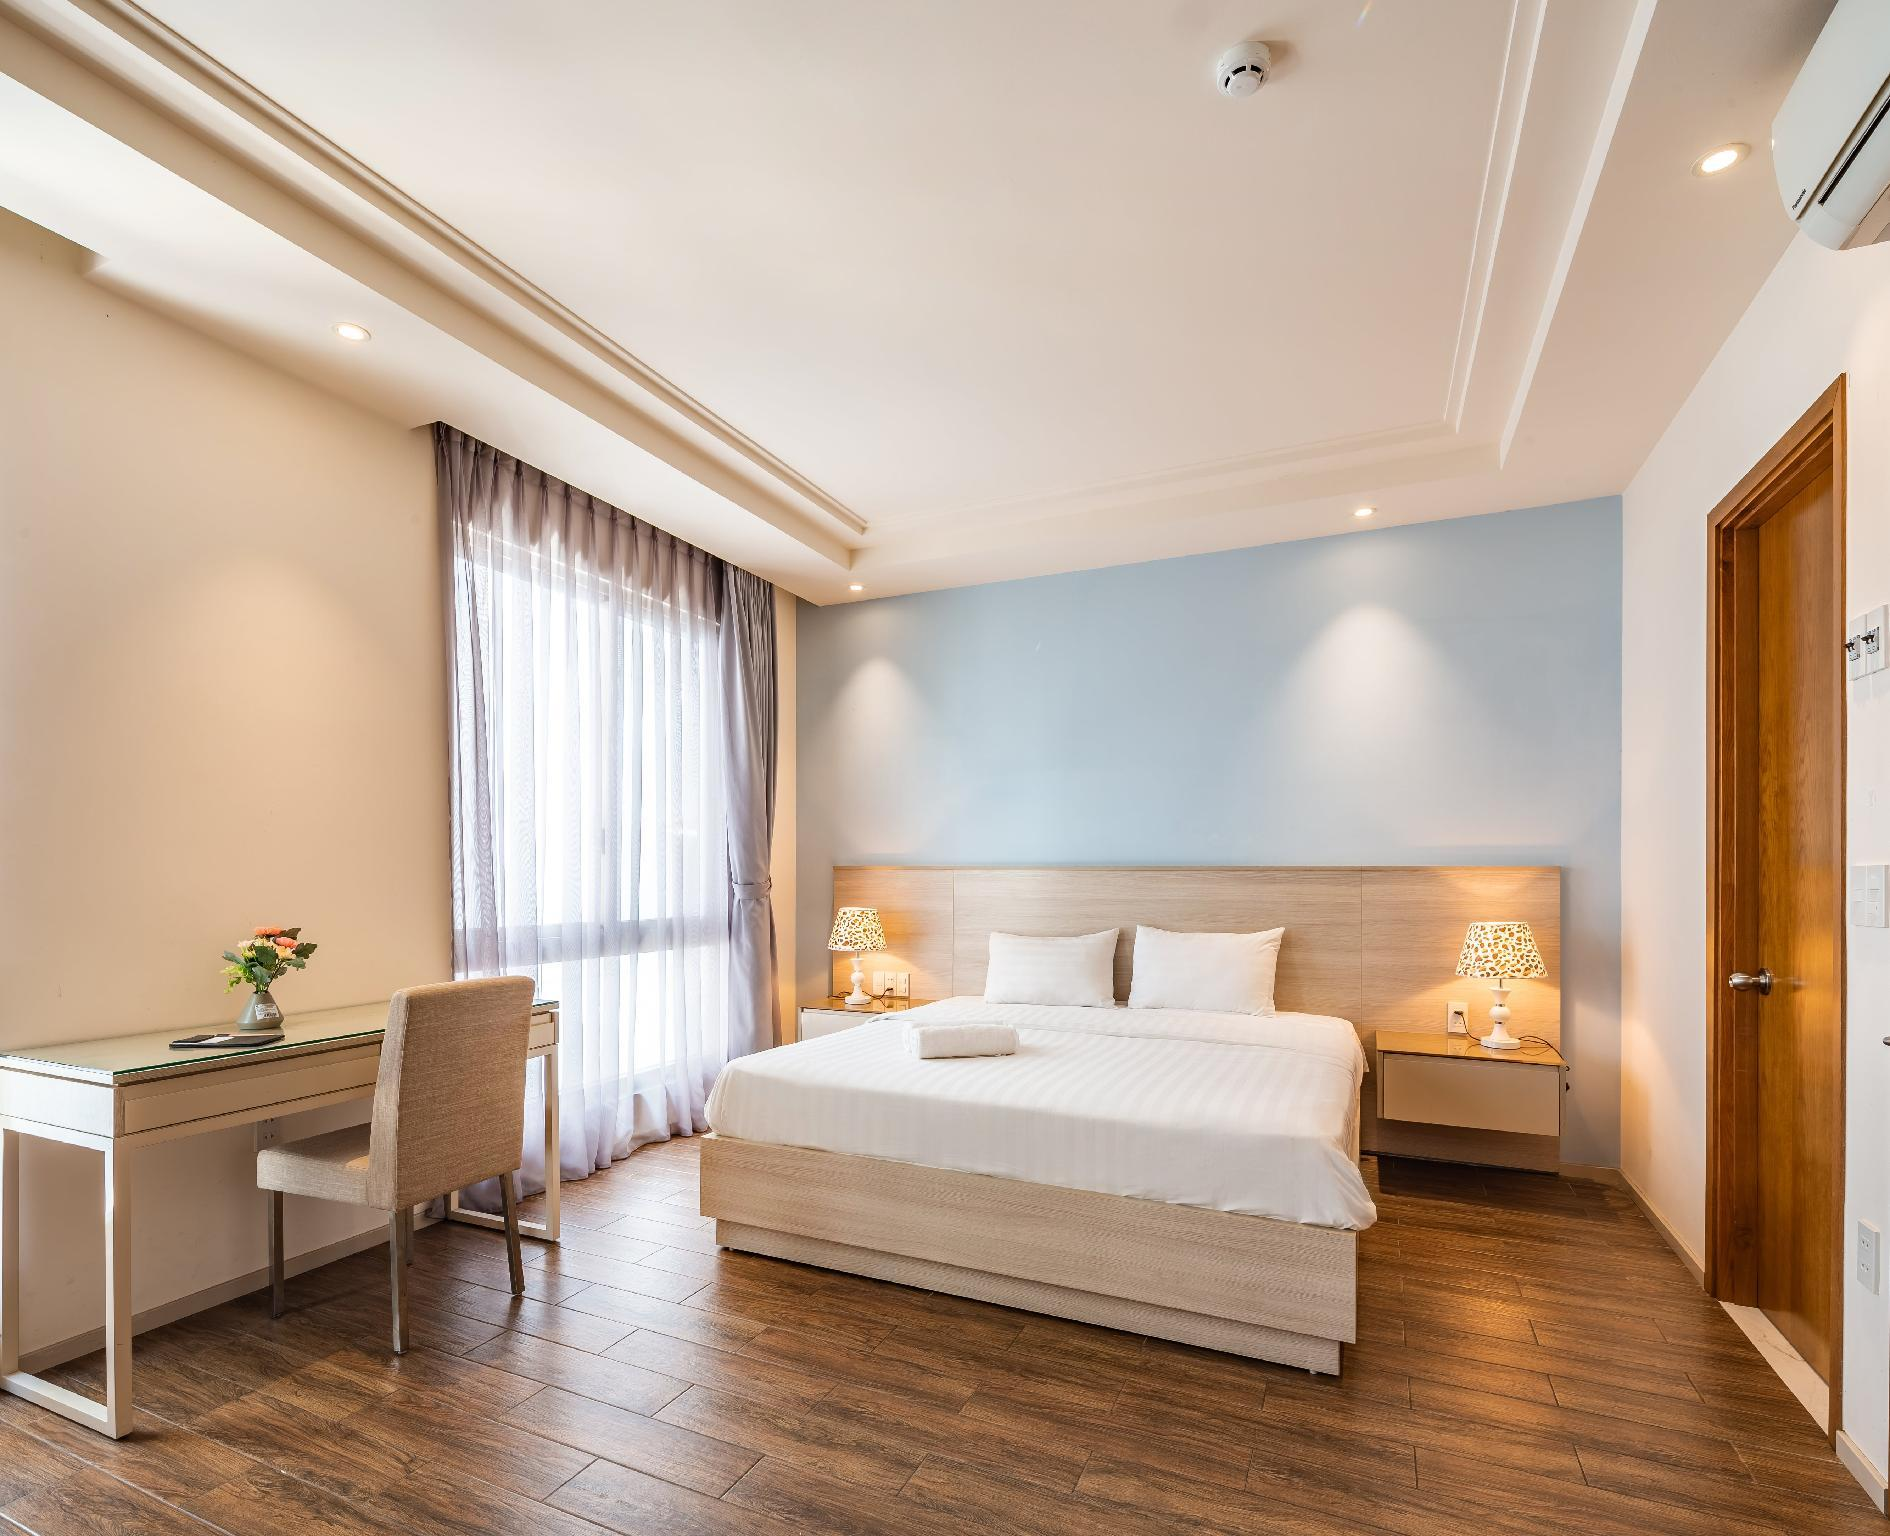 7S Hotel SIMMI 1 And Apartment